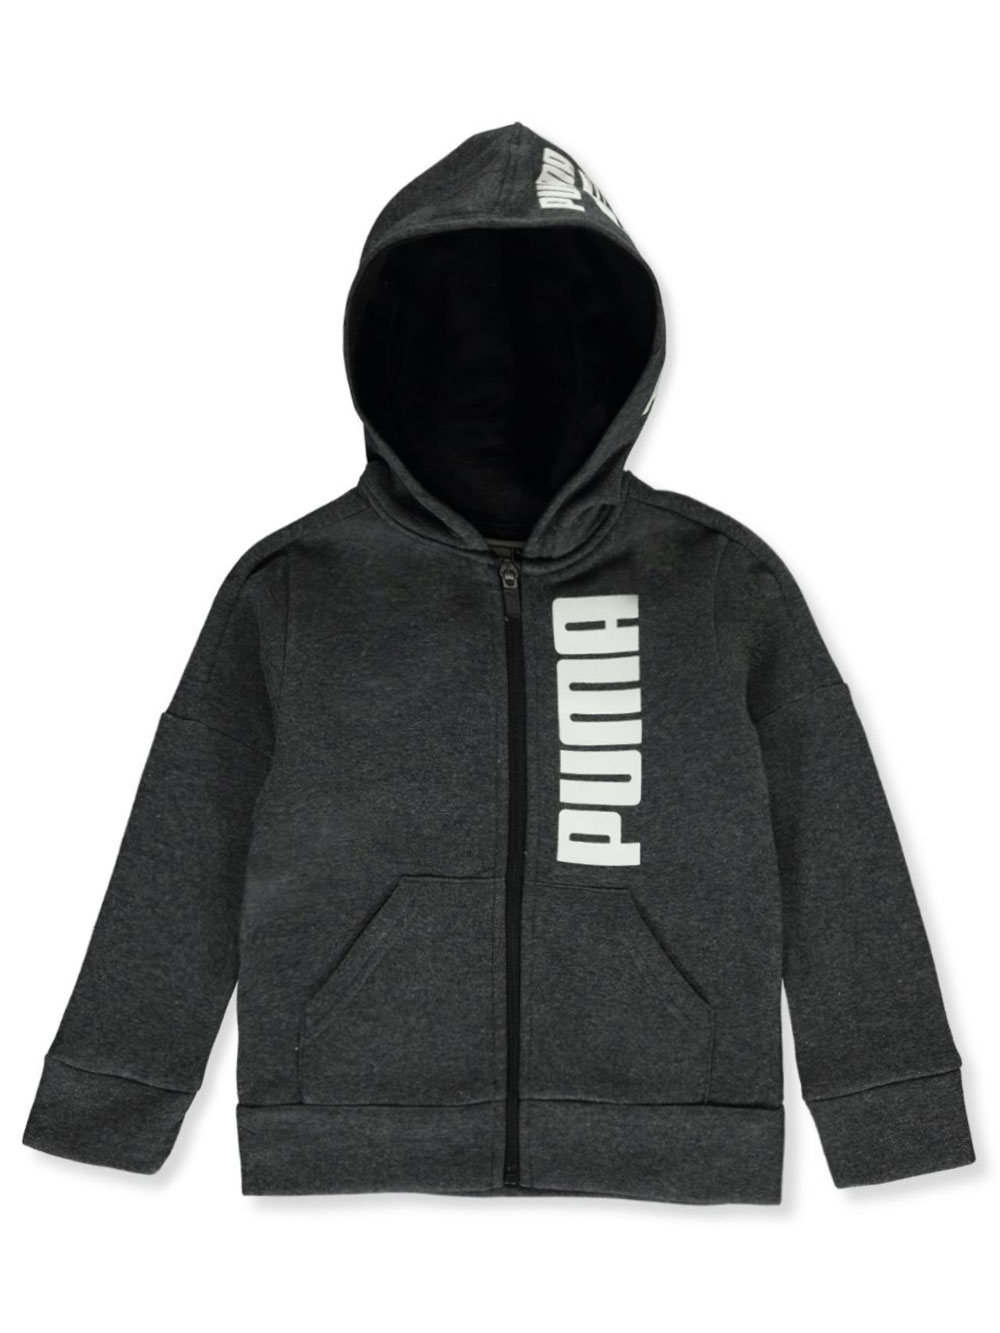 Heather Gray Hoodies